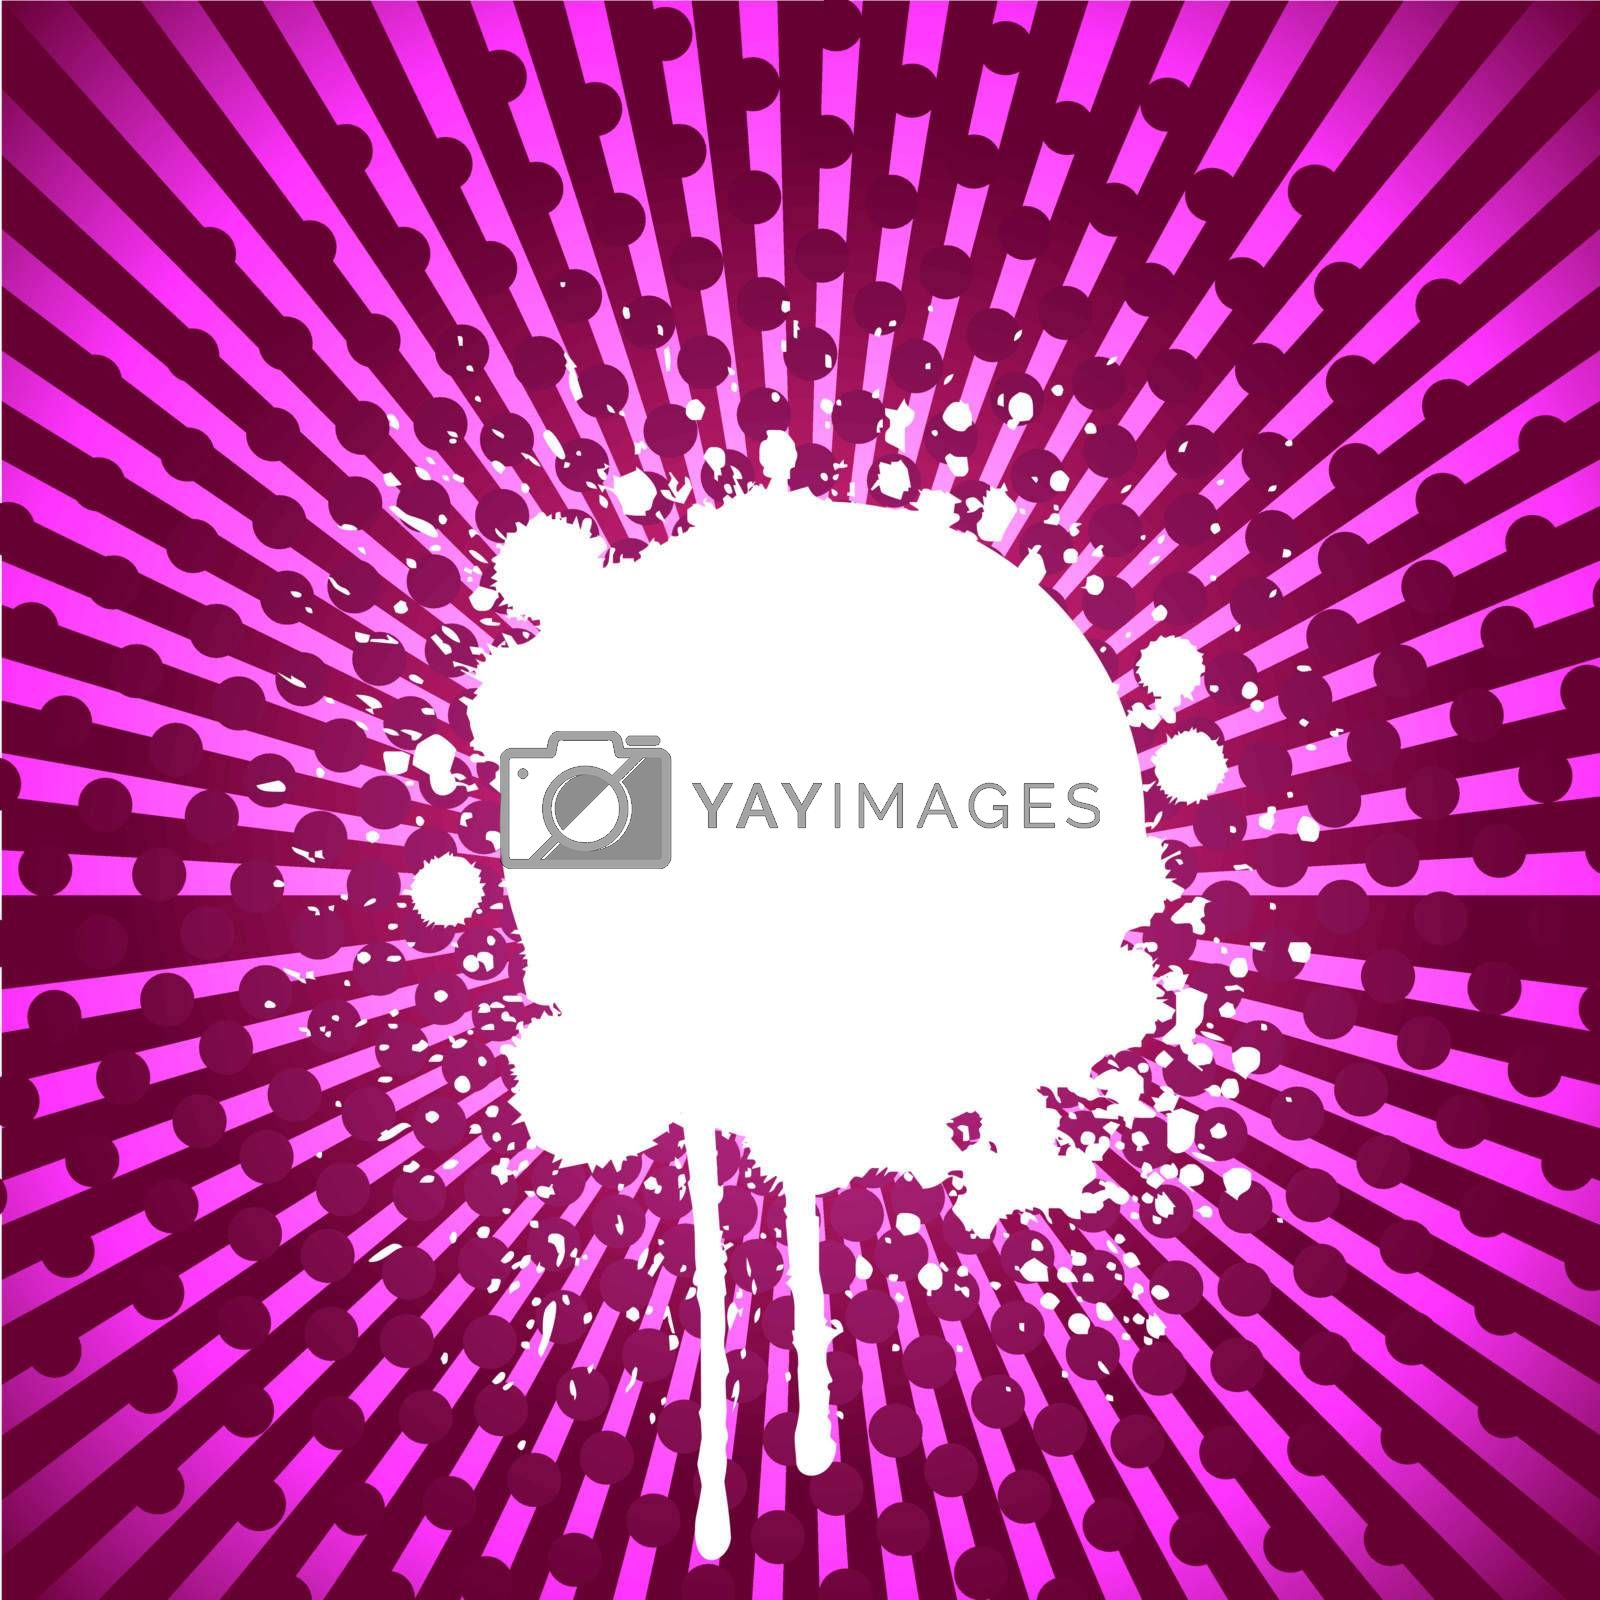 Abstract Colorful Grunge Background. EPS 10 vector file included